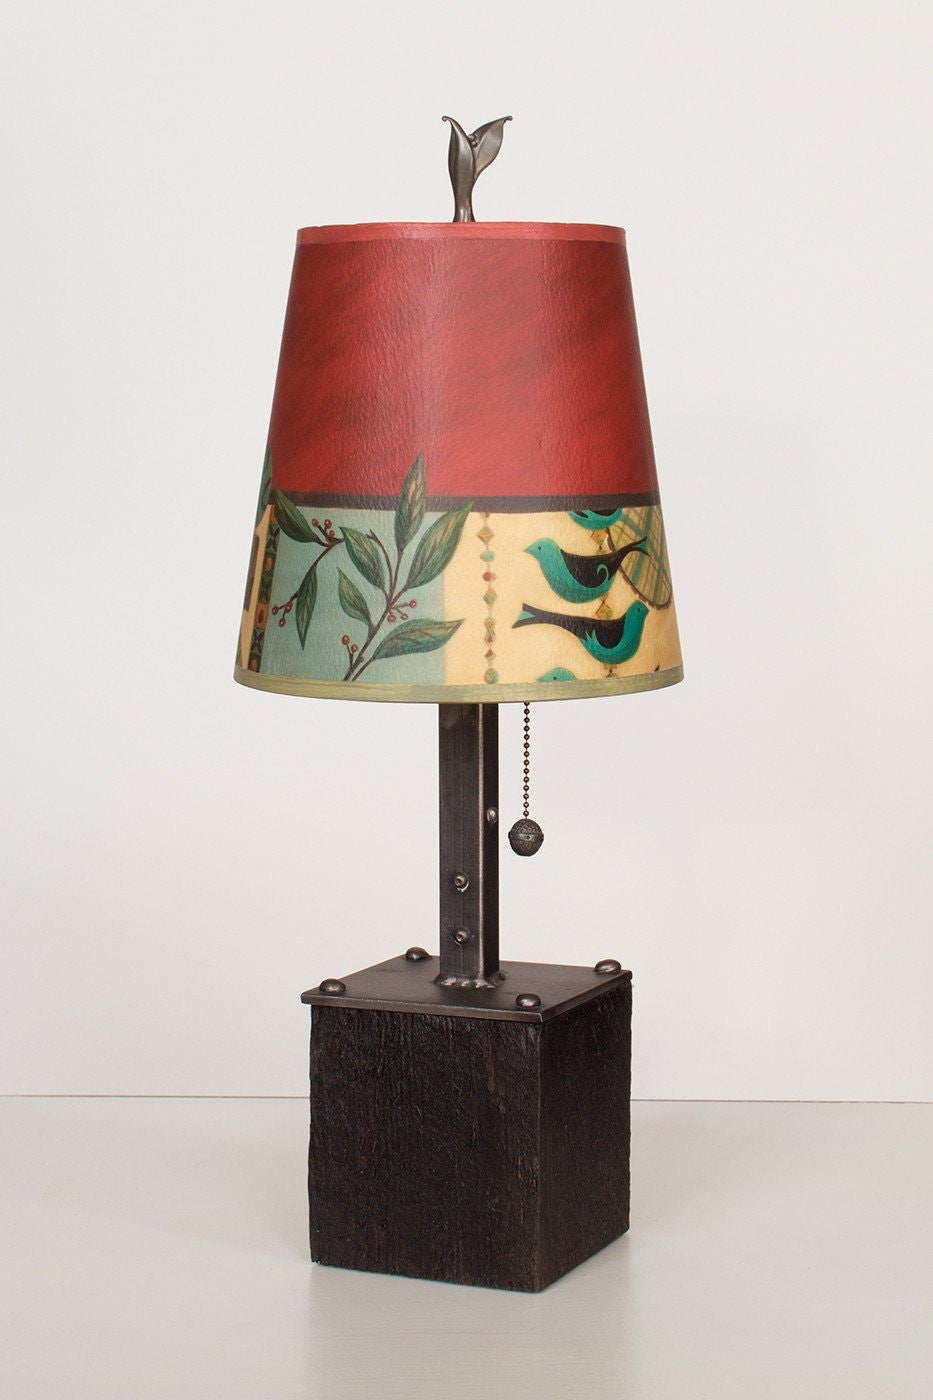 Steel Table Lamp on Reclaimed Wood with Small Drum Shade in New Capri Lit